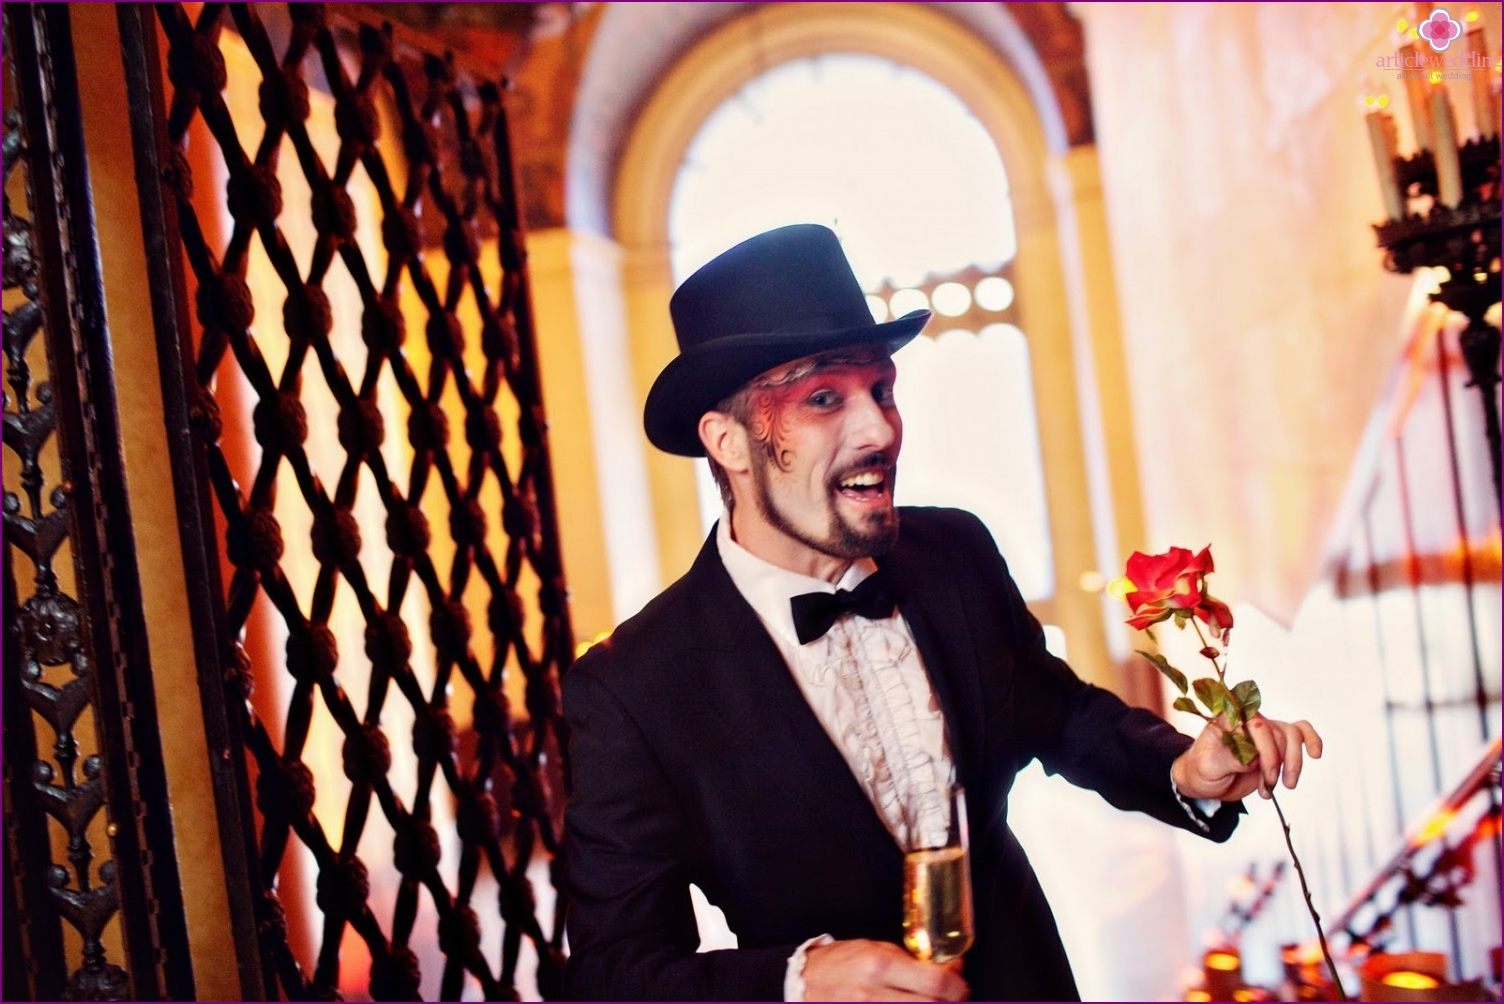 The groom in a Moulin Rouge style